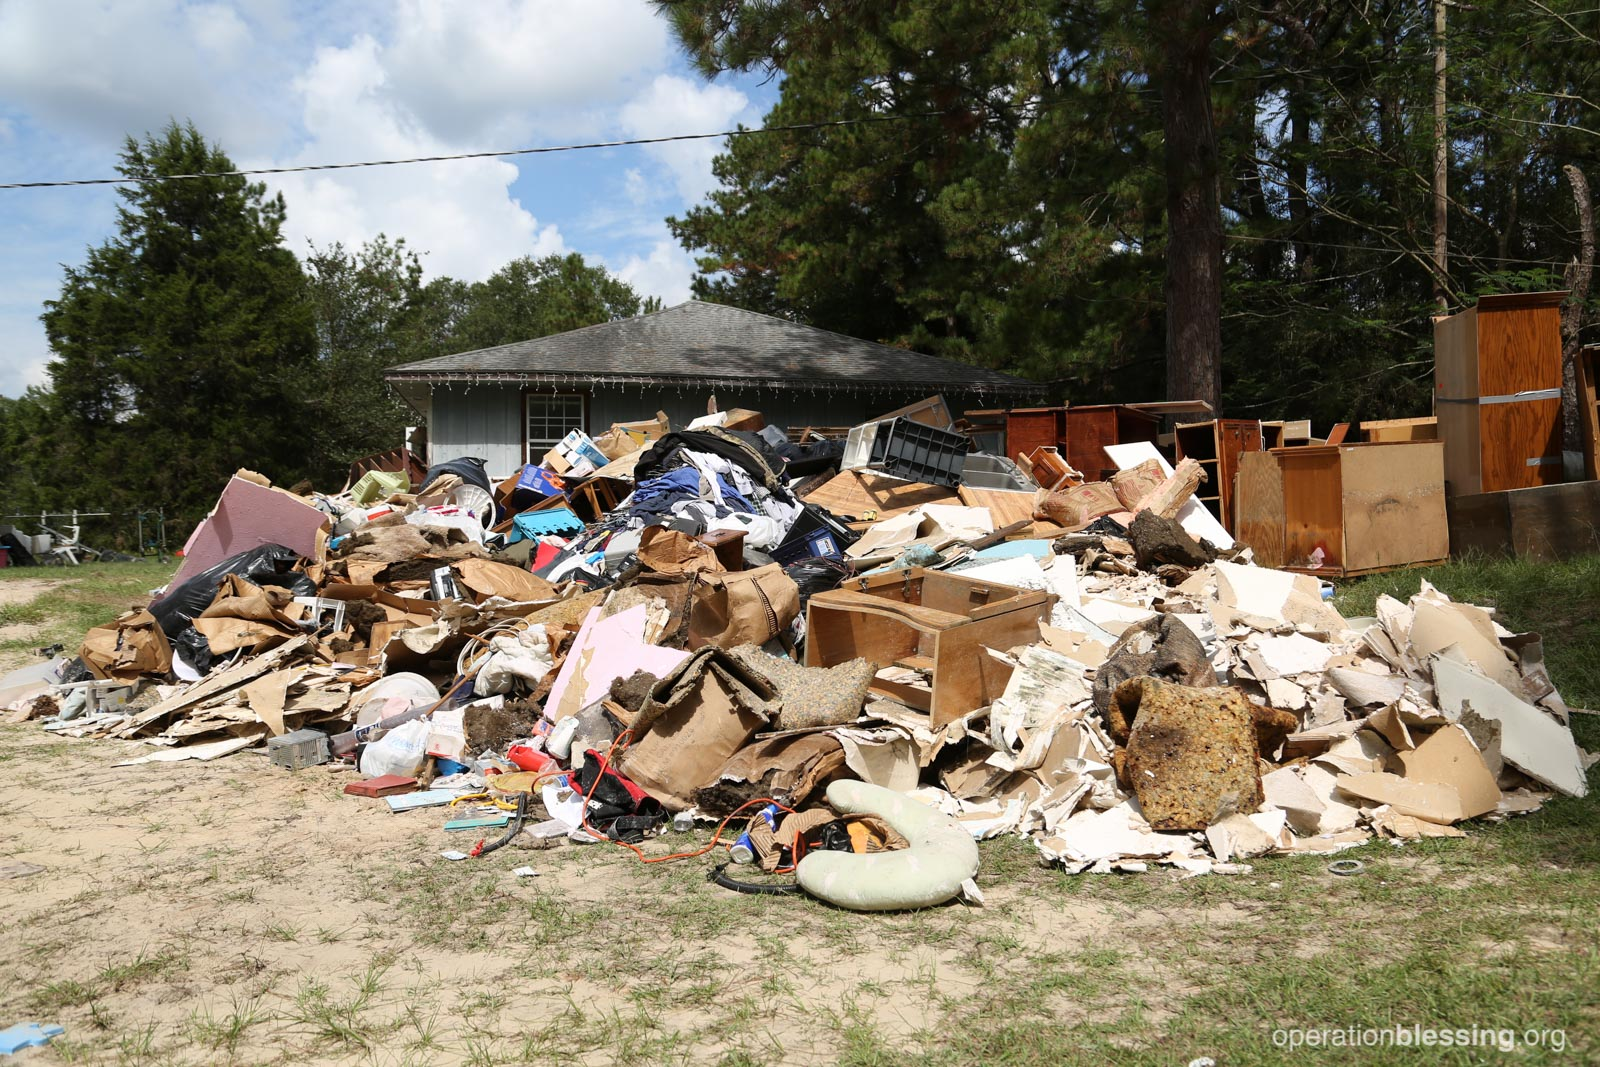 The debris pile outside of Laura's house filled with destroyed belongings and family memories.